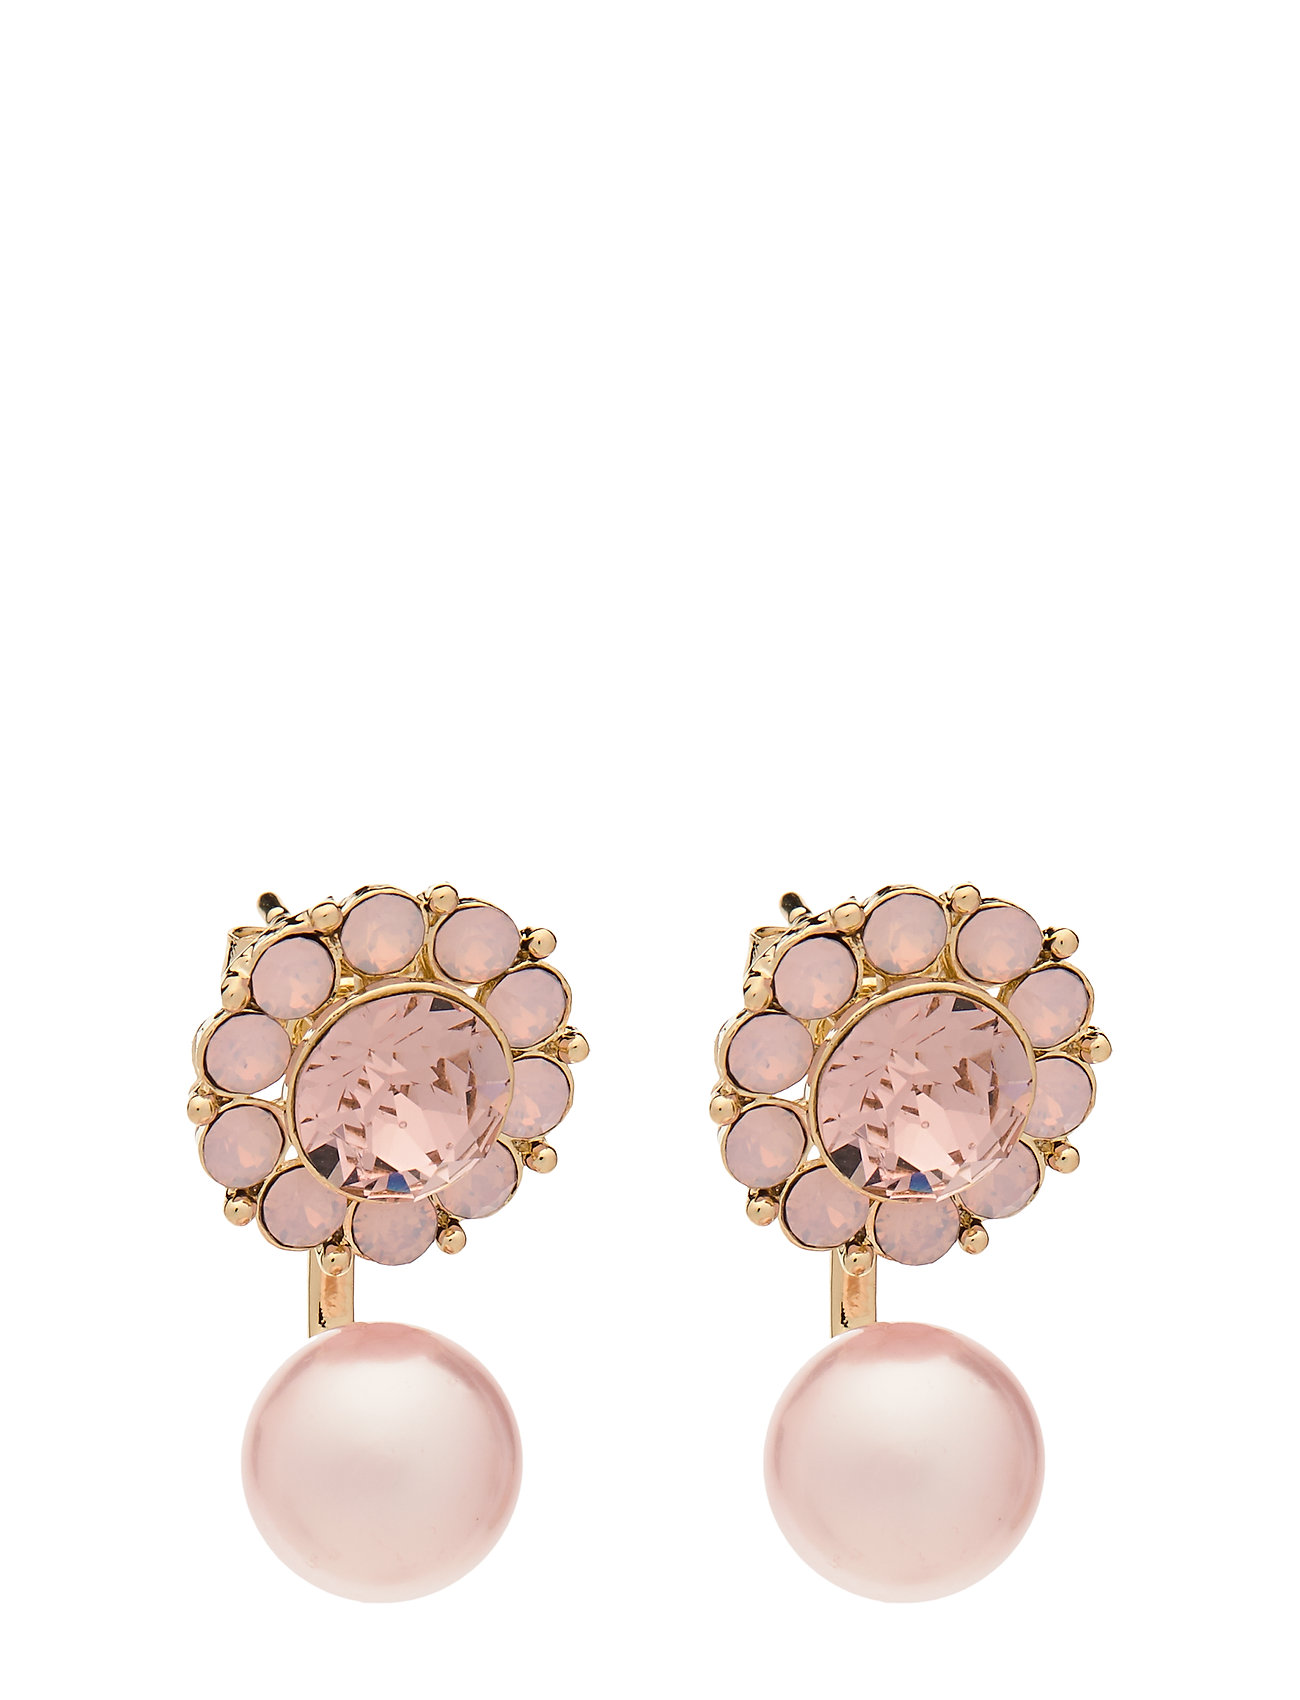 Image of Miss Sofia Butterfly Earrings - Vintage Rose Opal Accessories Jewellery Earrings Studs Lyserød LILY AND ROSE (3416362861)